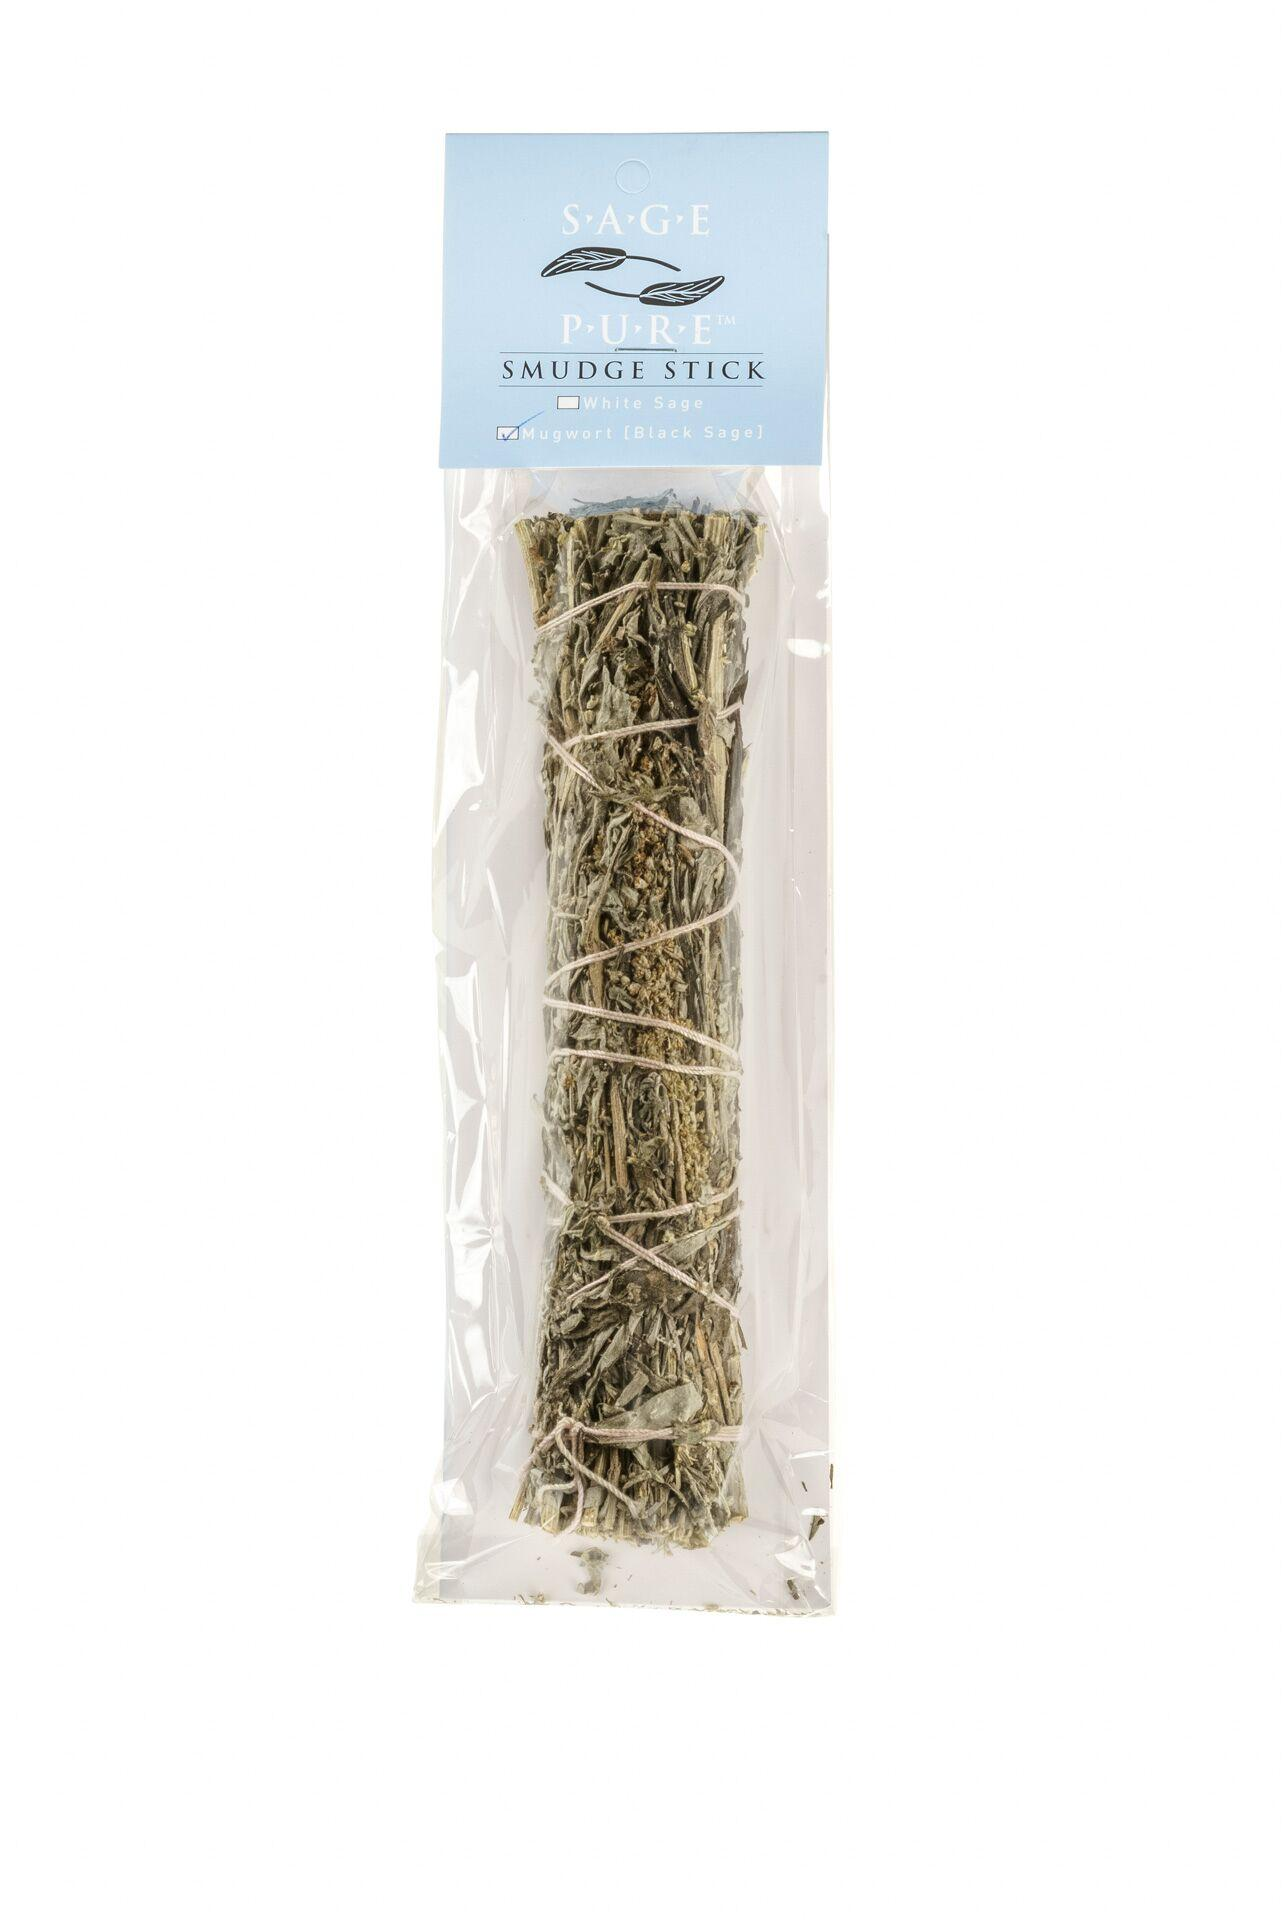 Sage Pure MUGWORT Black Sage SMUDGE STICKS